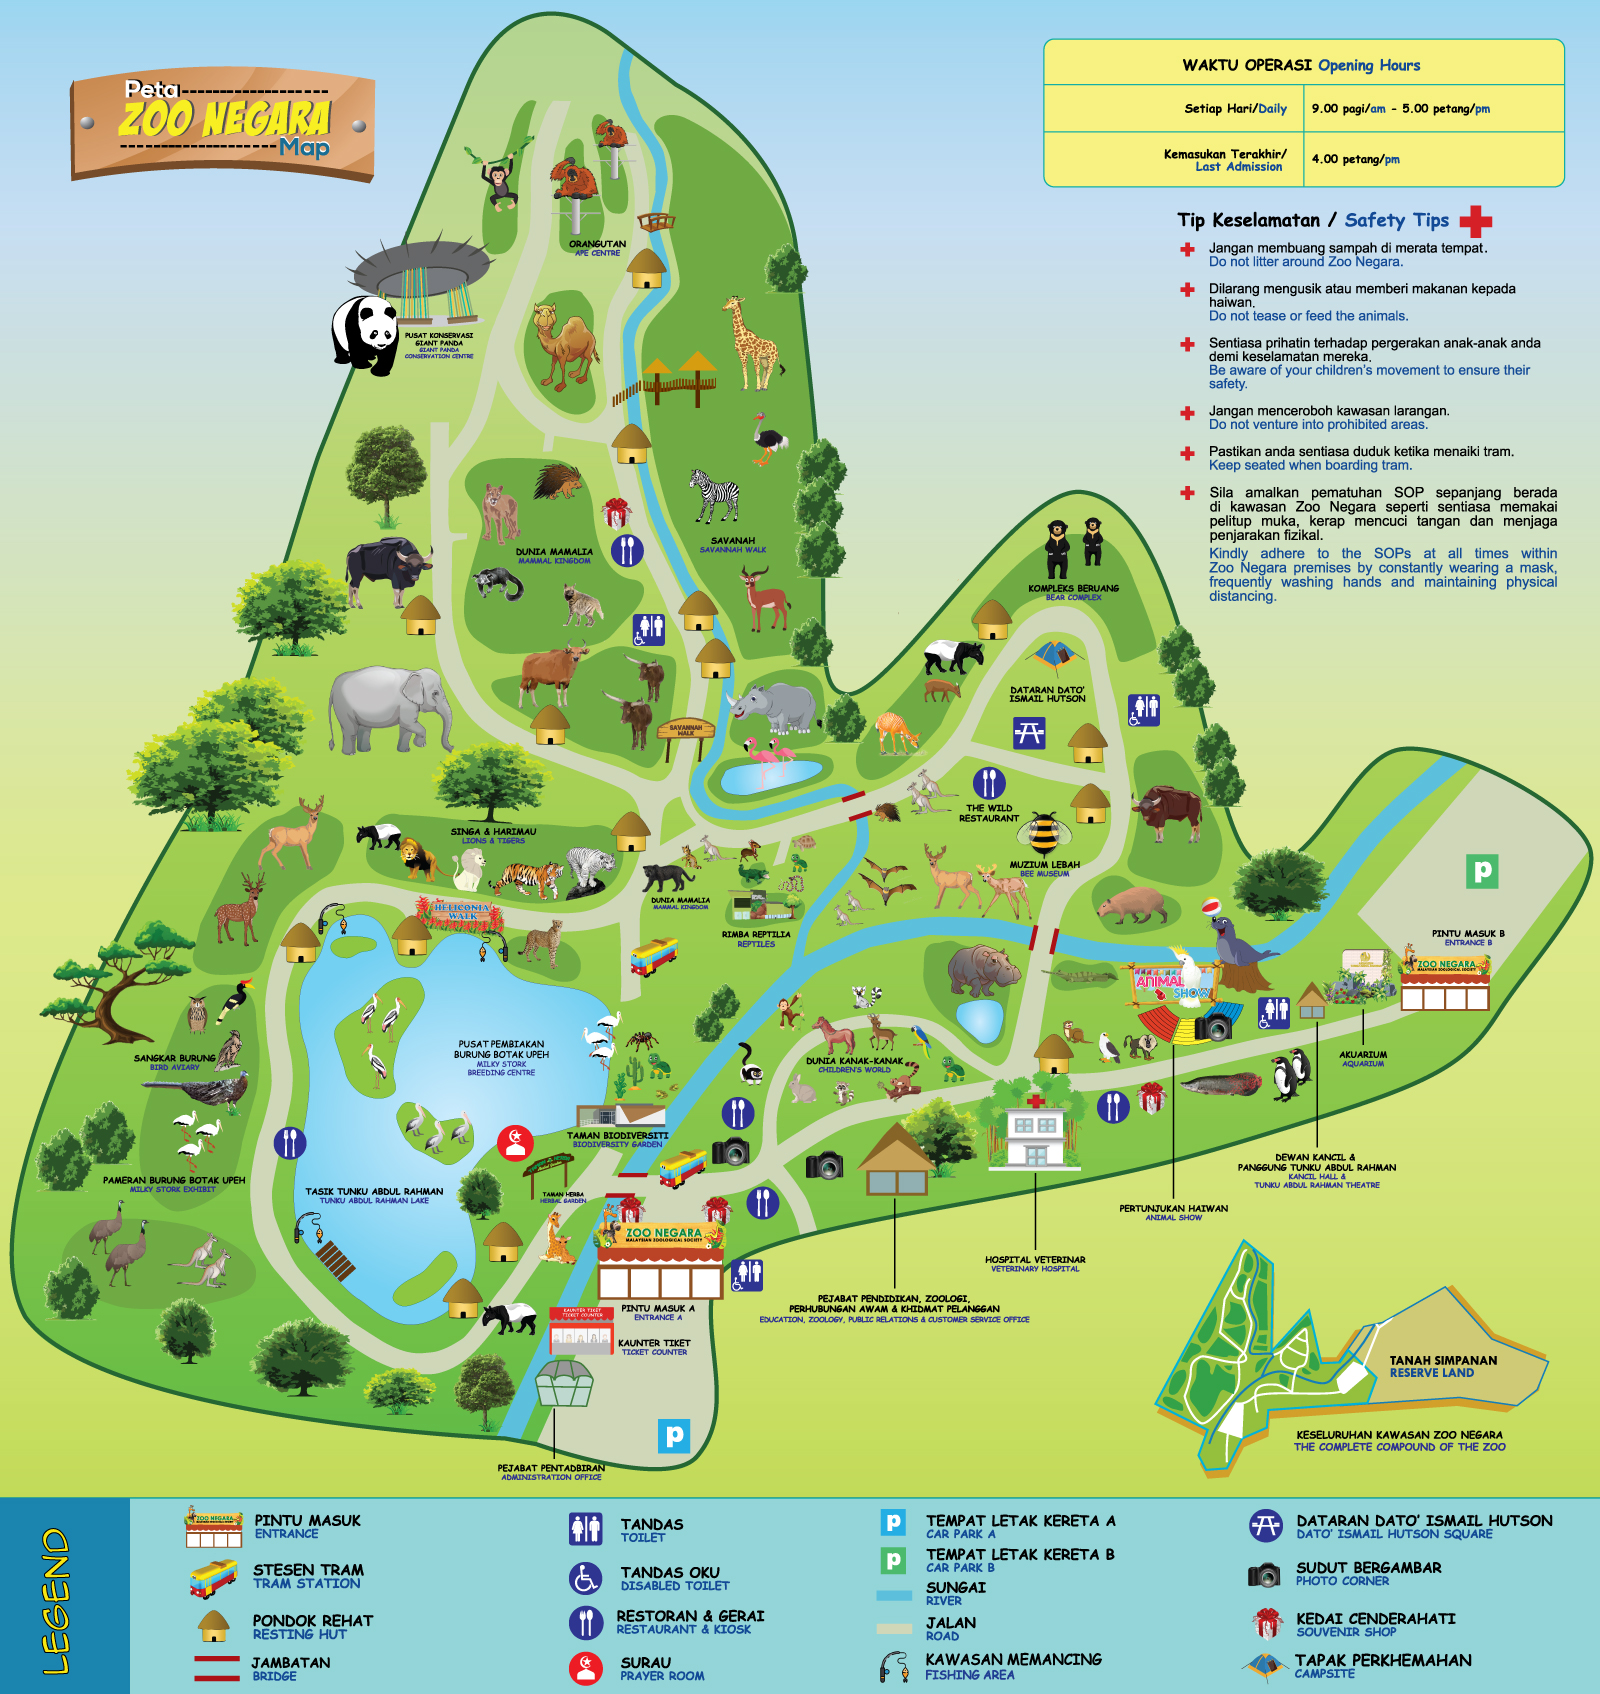 miami zoo map with Map on HurricaneAndrew moreover West Edmonton Mall Edmonton d501027 additionally Stephen Curry Sneakers likewise 44260 likewise Universal.